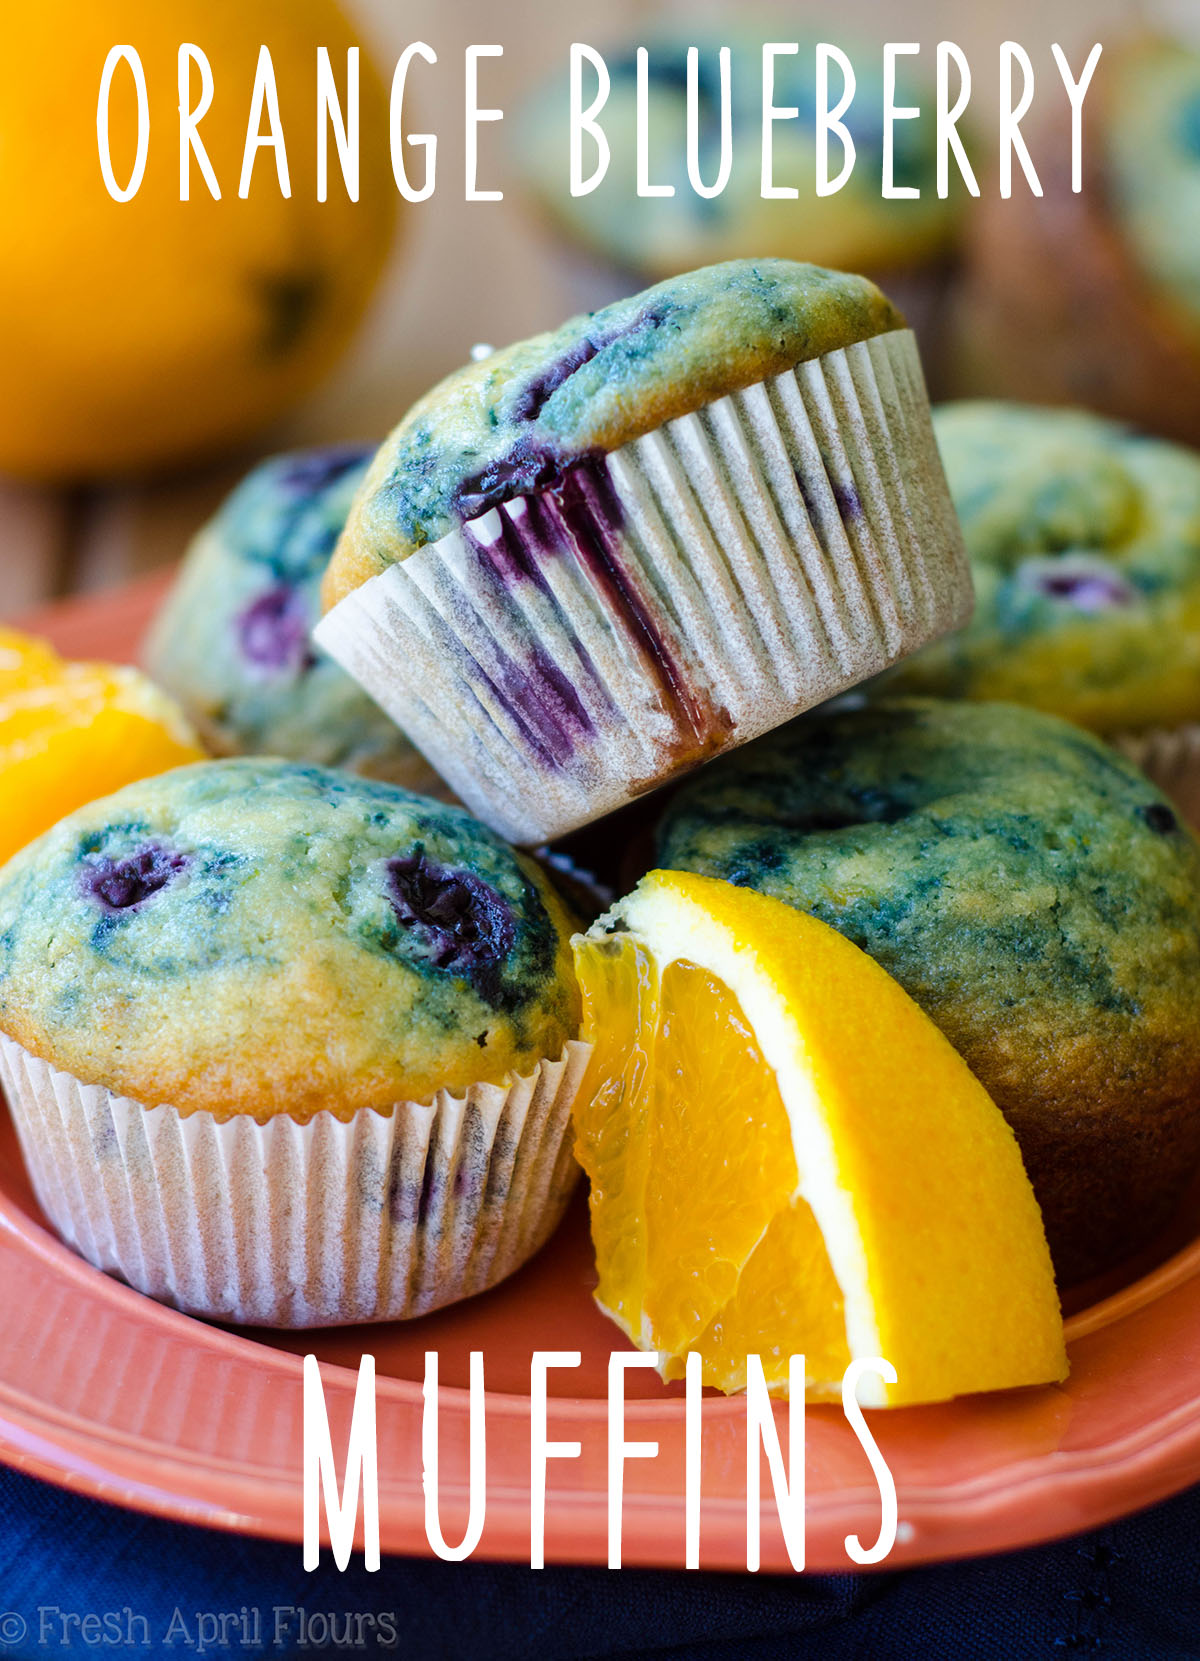 Orange Blueberry Muffins: Orange Blueberry Muffins: Classic blueberry muffins with a pop of orange flavor.